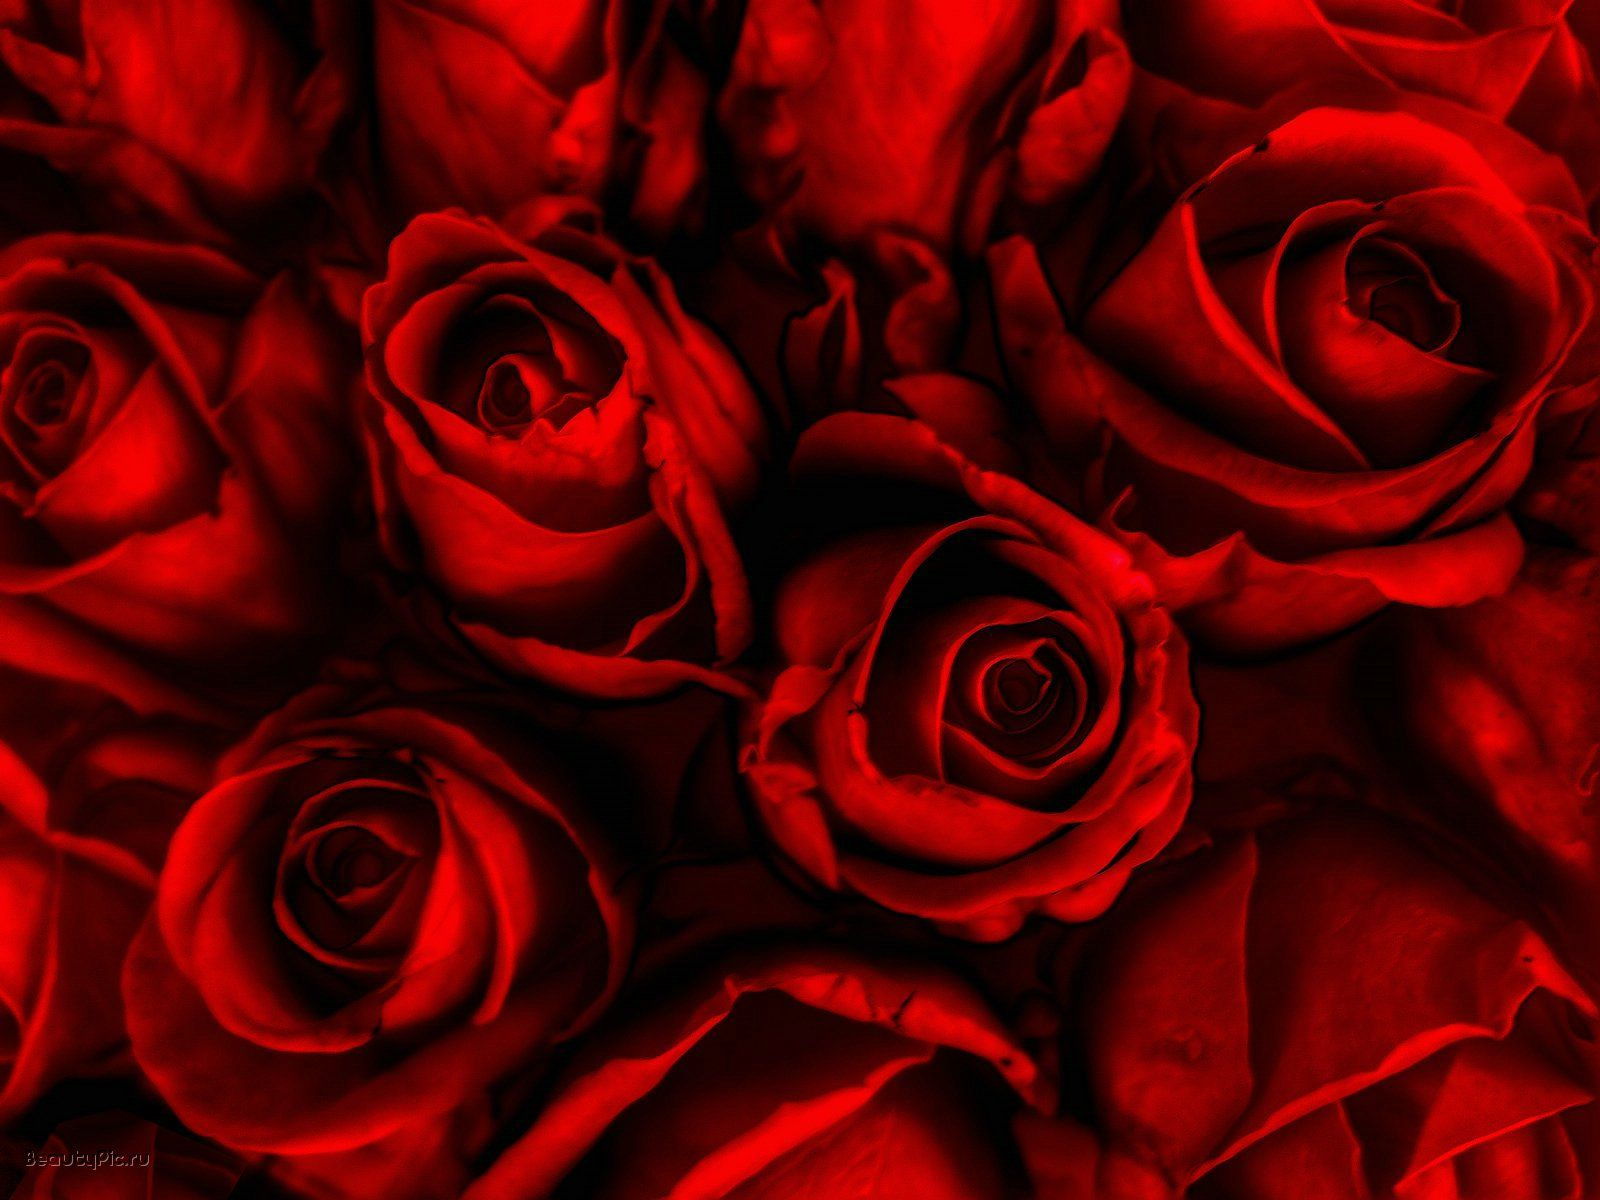 Red Roses Wallpaper Backgrounds rose backgrounds